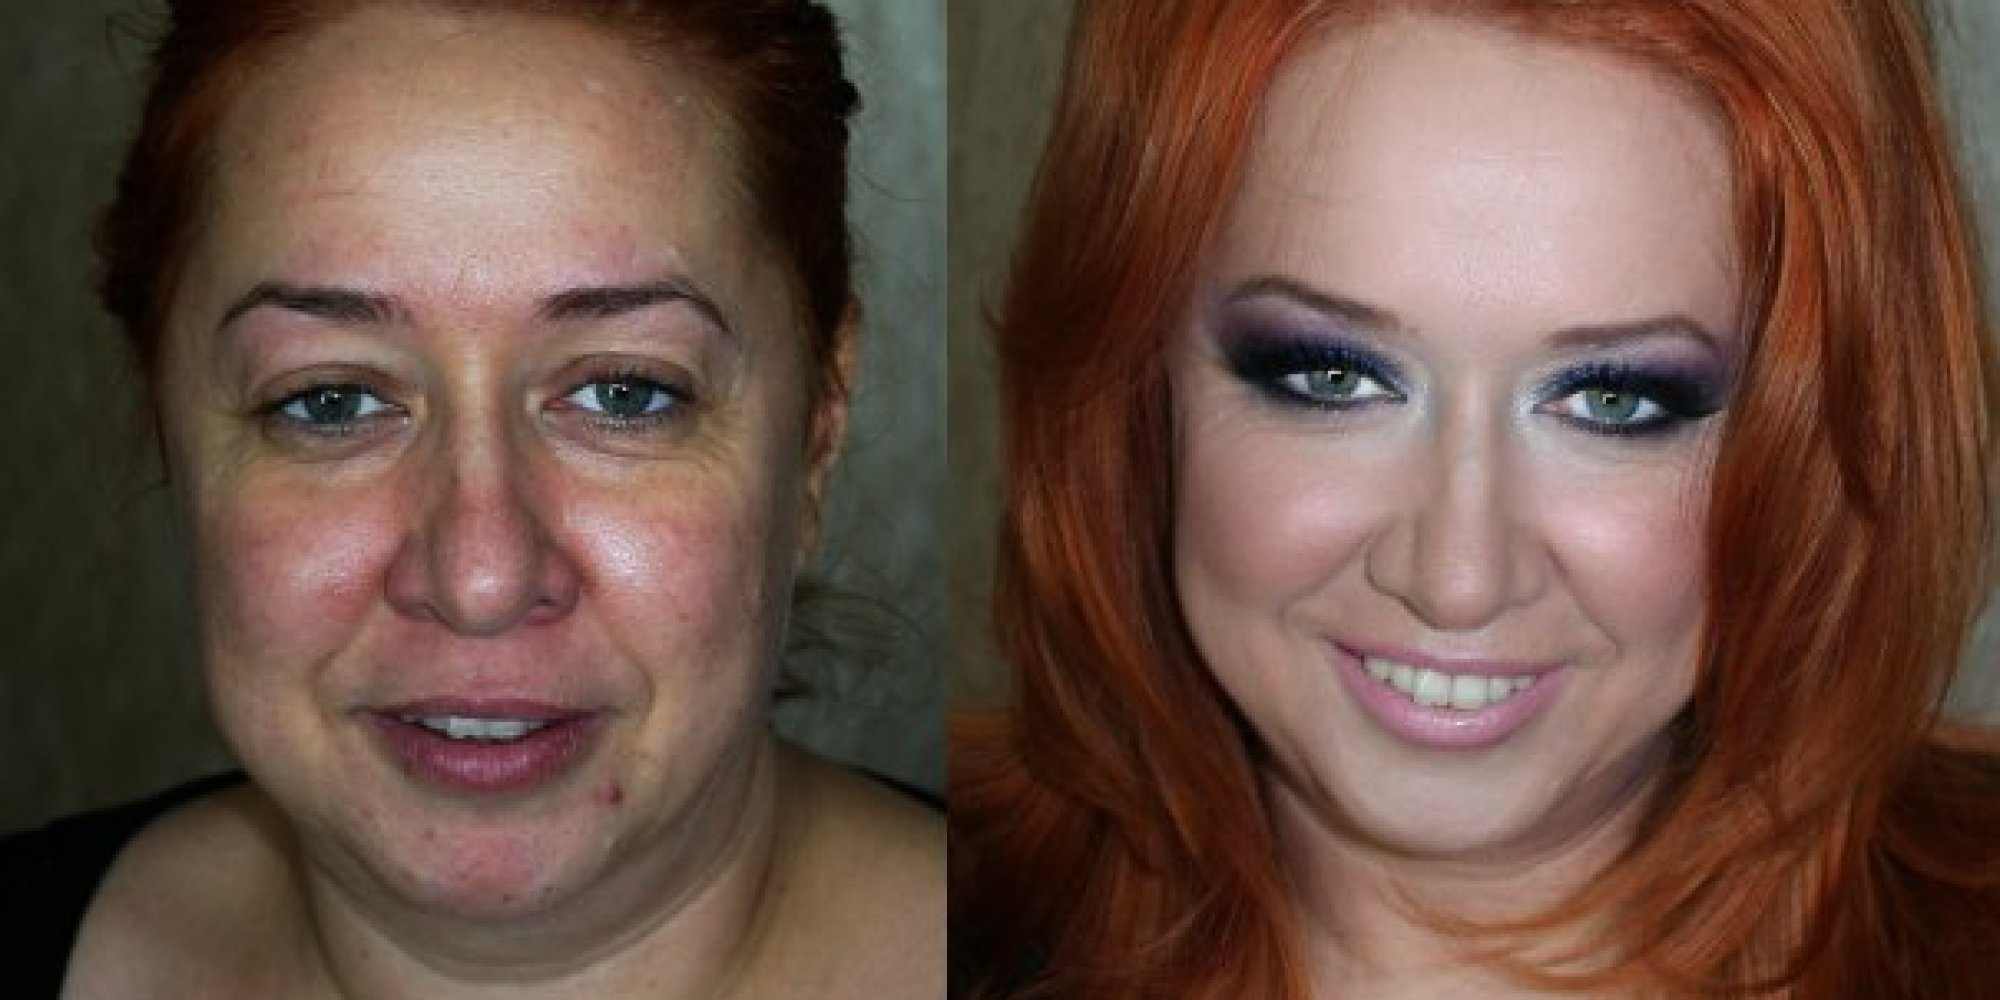 Before-And-After Makeup Photos Make Women Unrecognizable (PHOTOS)